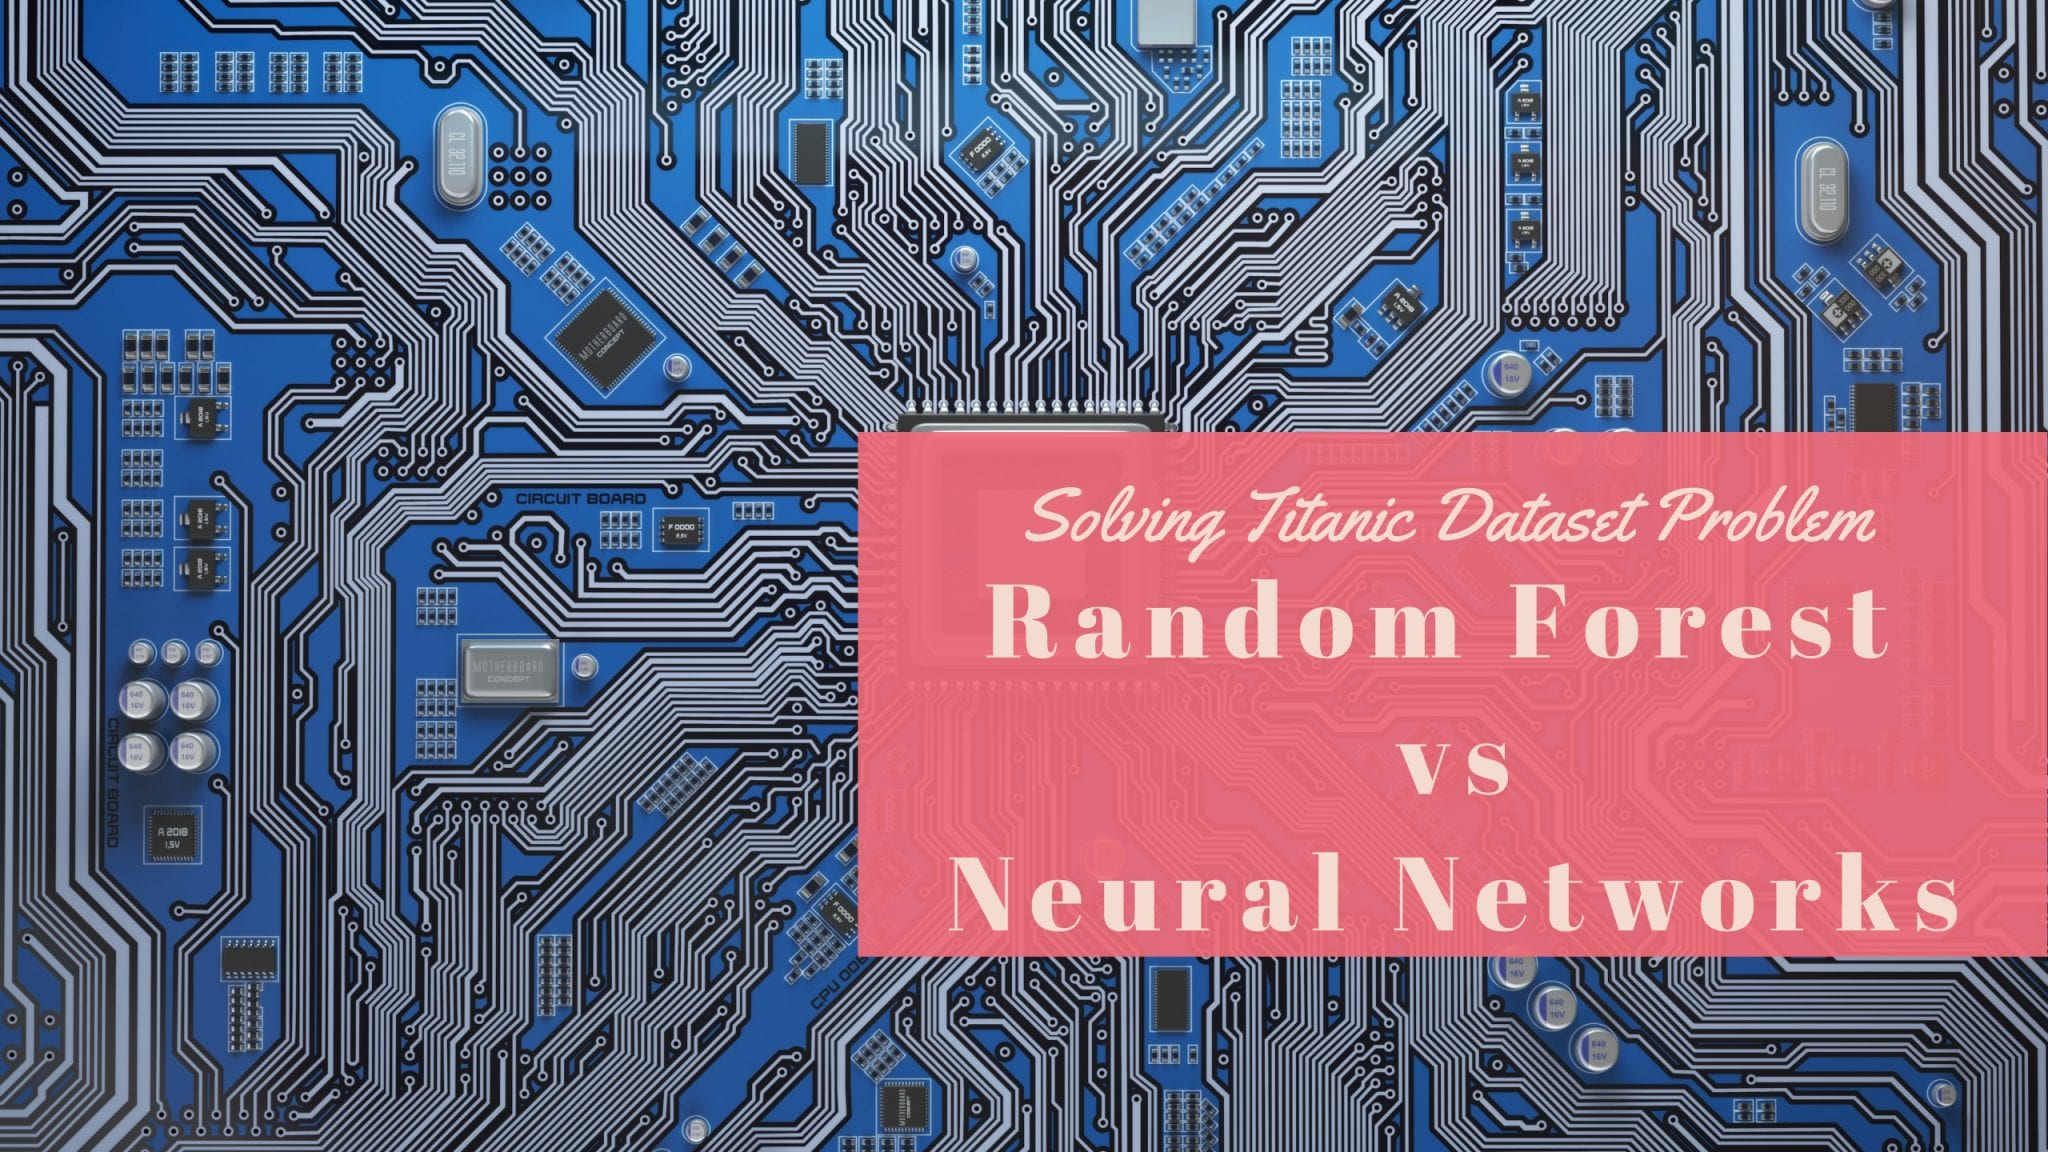 Titanic Survival Problem Using Random Forest vs Neural Networks